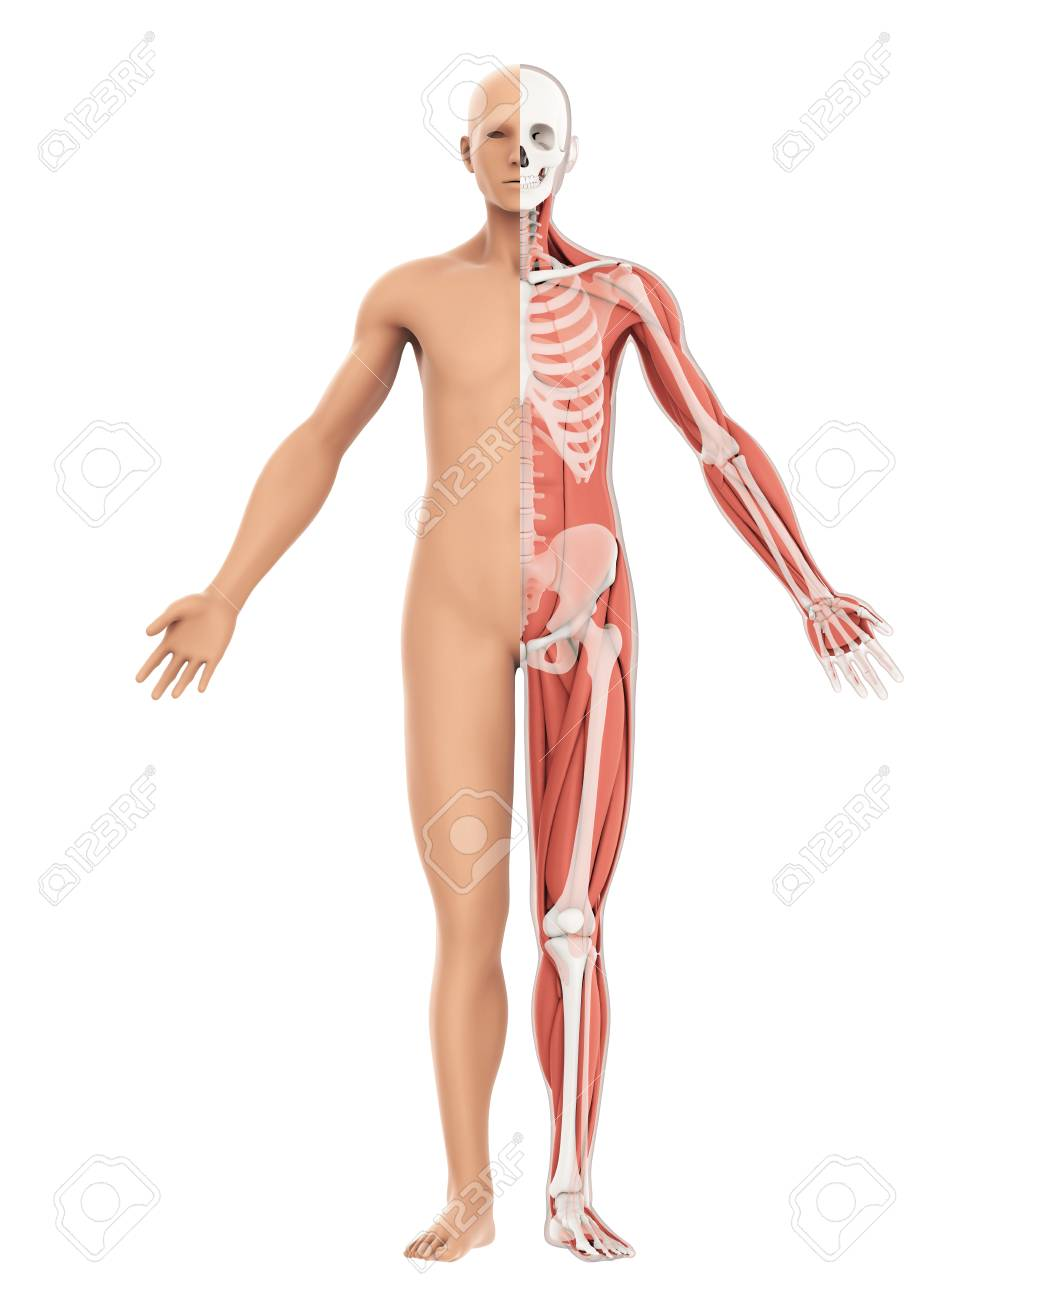 Human Body Amd Skeleton Anatomy Isolated Stock Photo Picture And